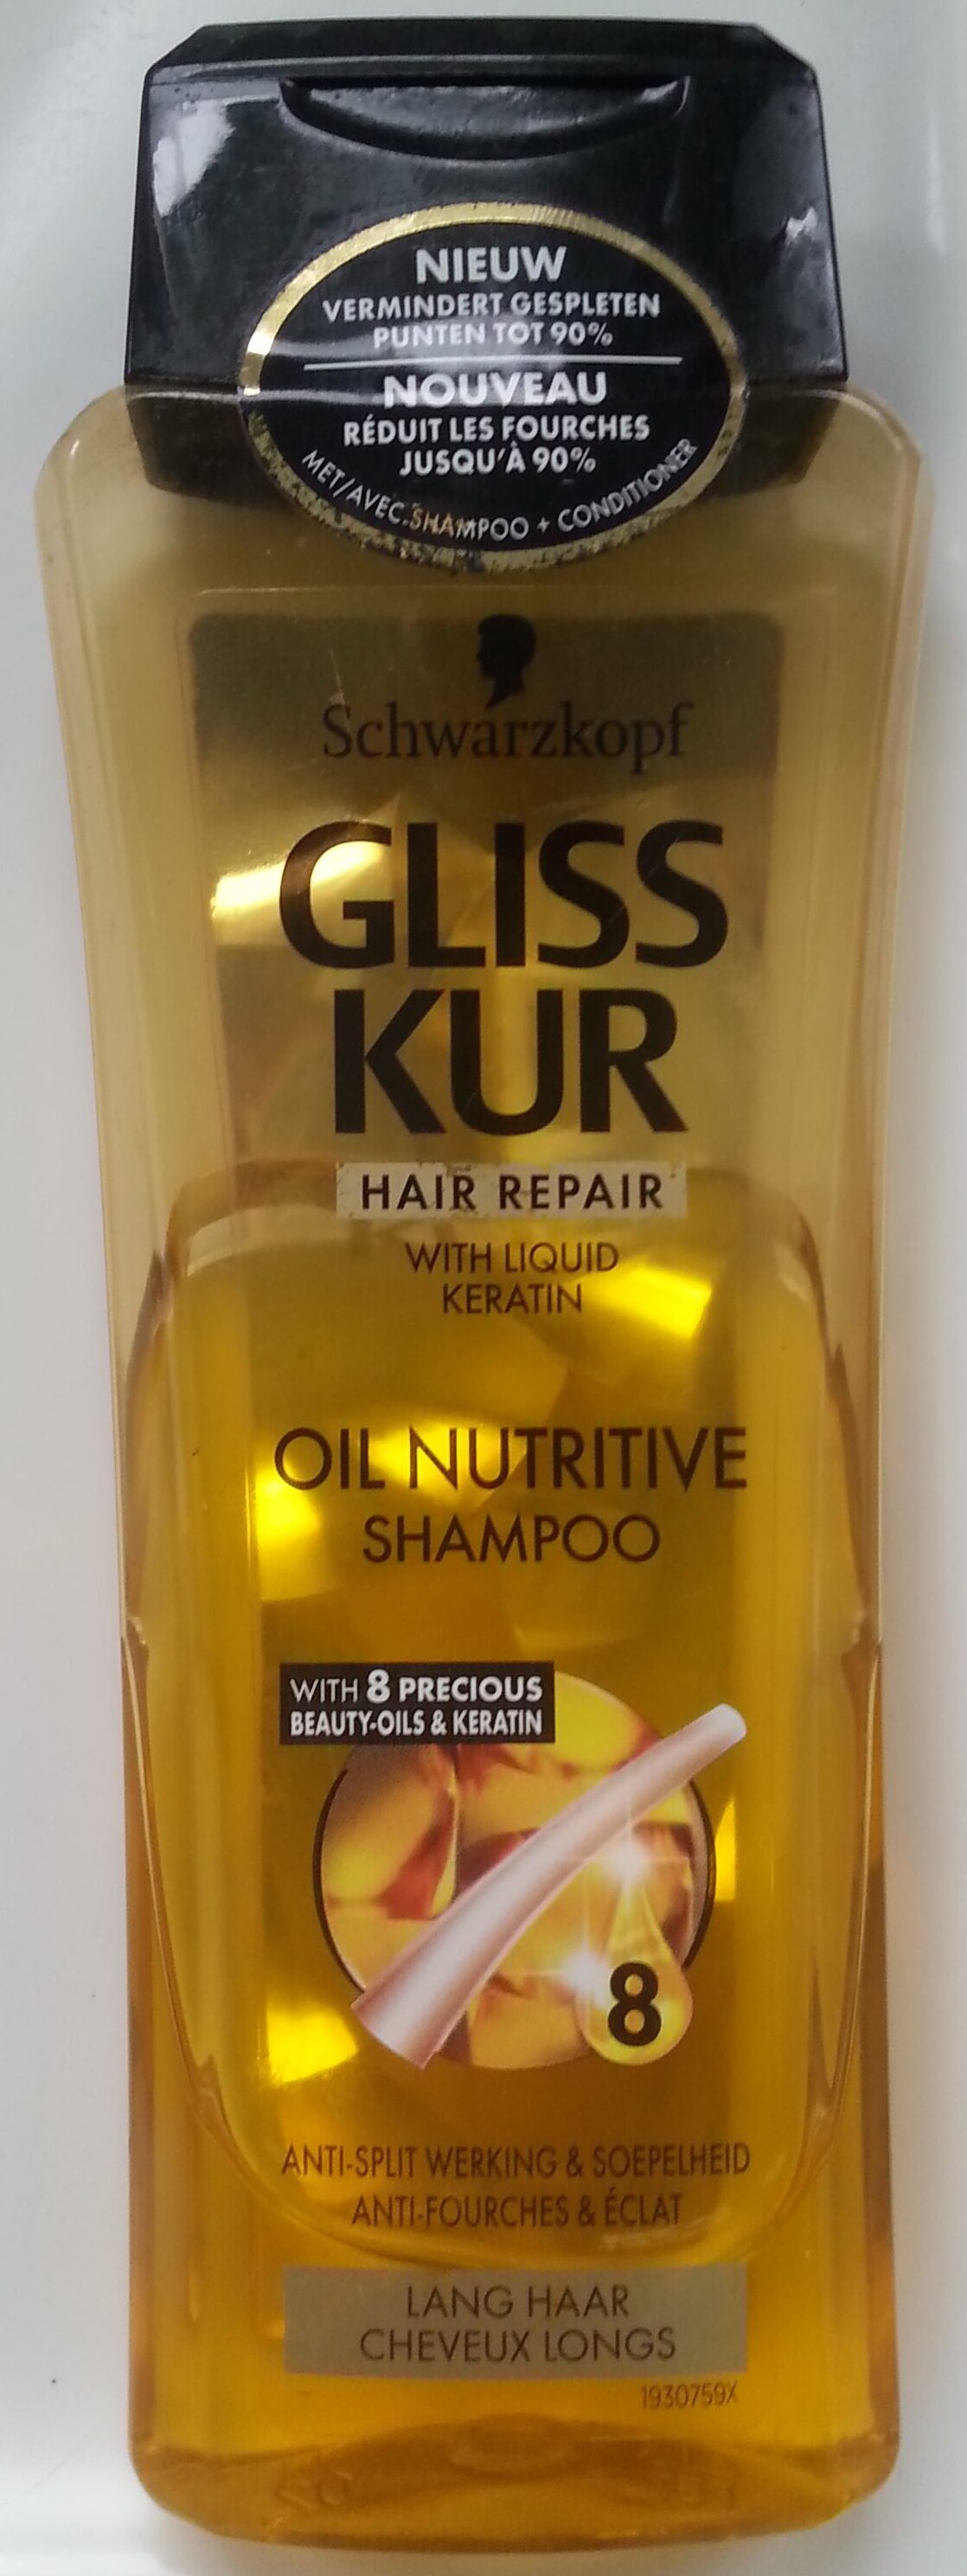 Gliss Kur - Hair repair -  Oil Nutritive Shampoo - Produit - en